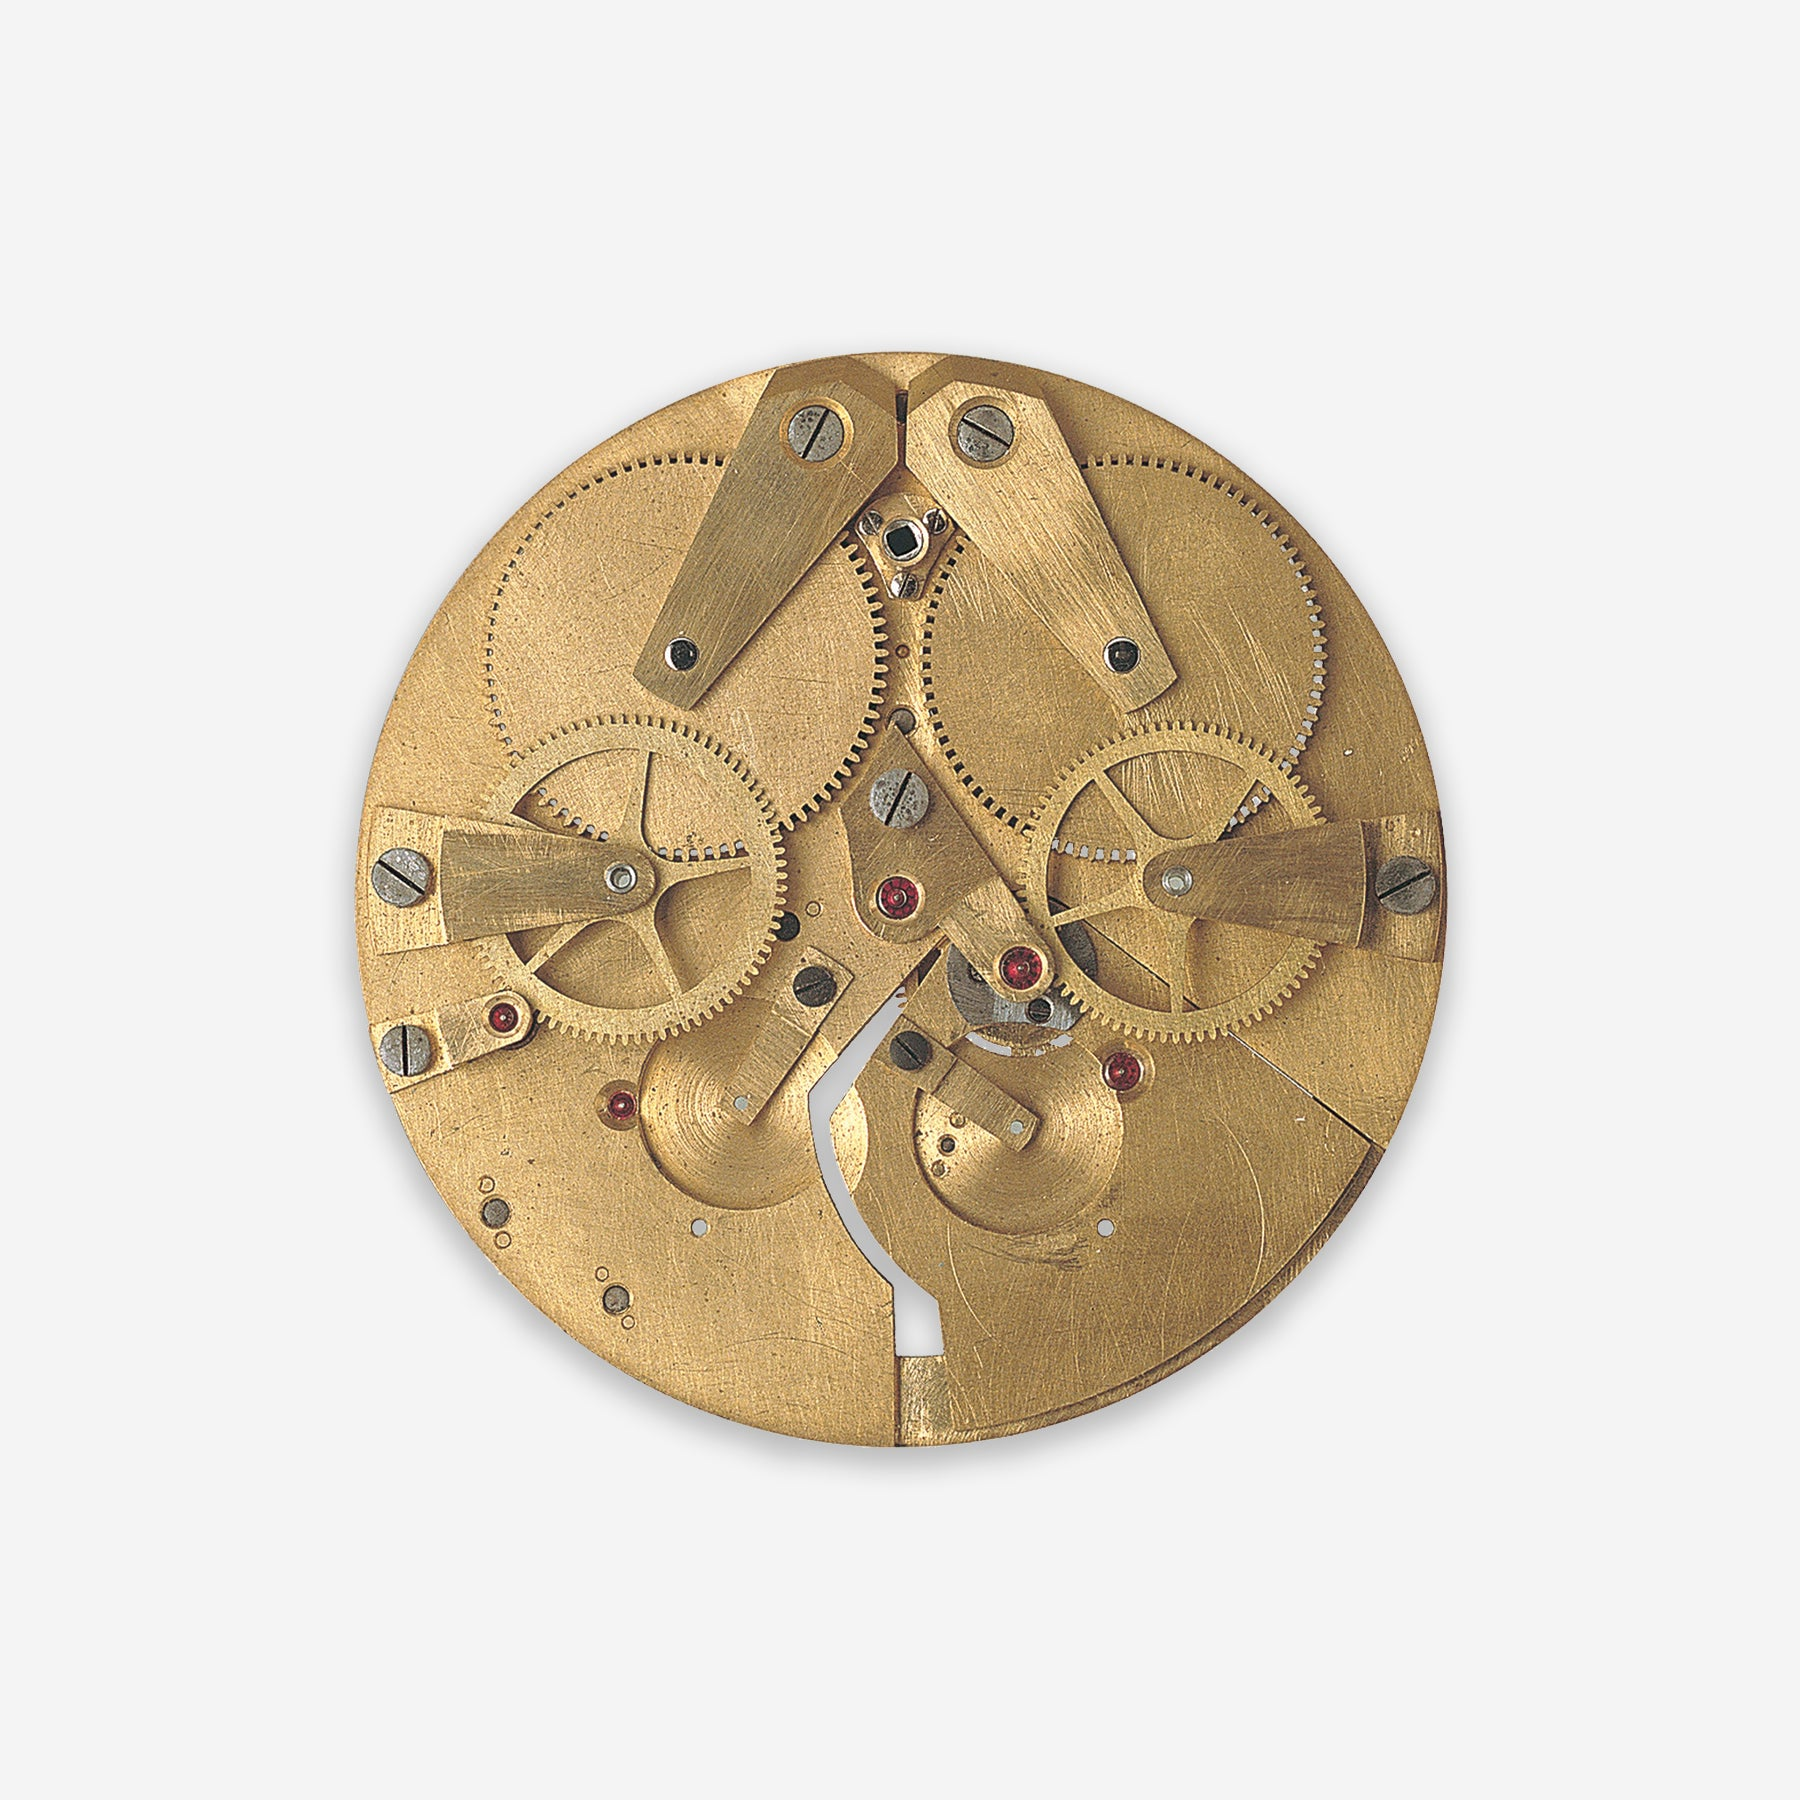 What is left of F.P. Journe's first attempt at a resonance movement